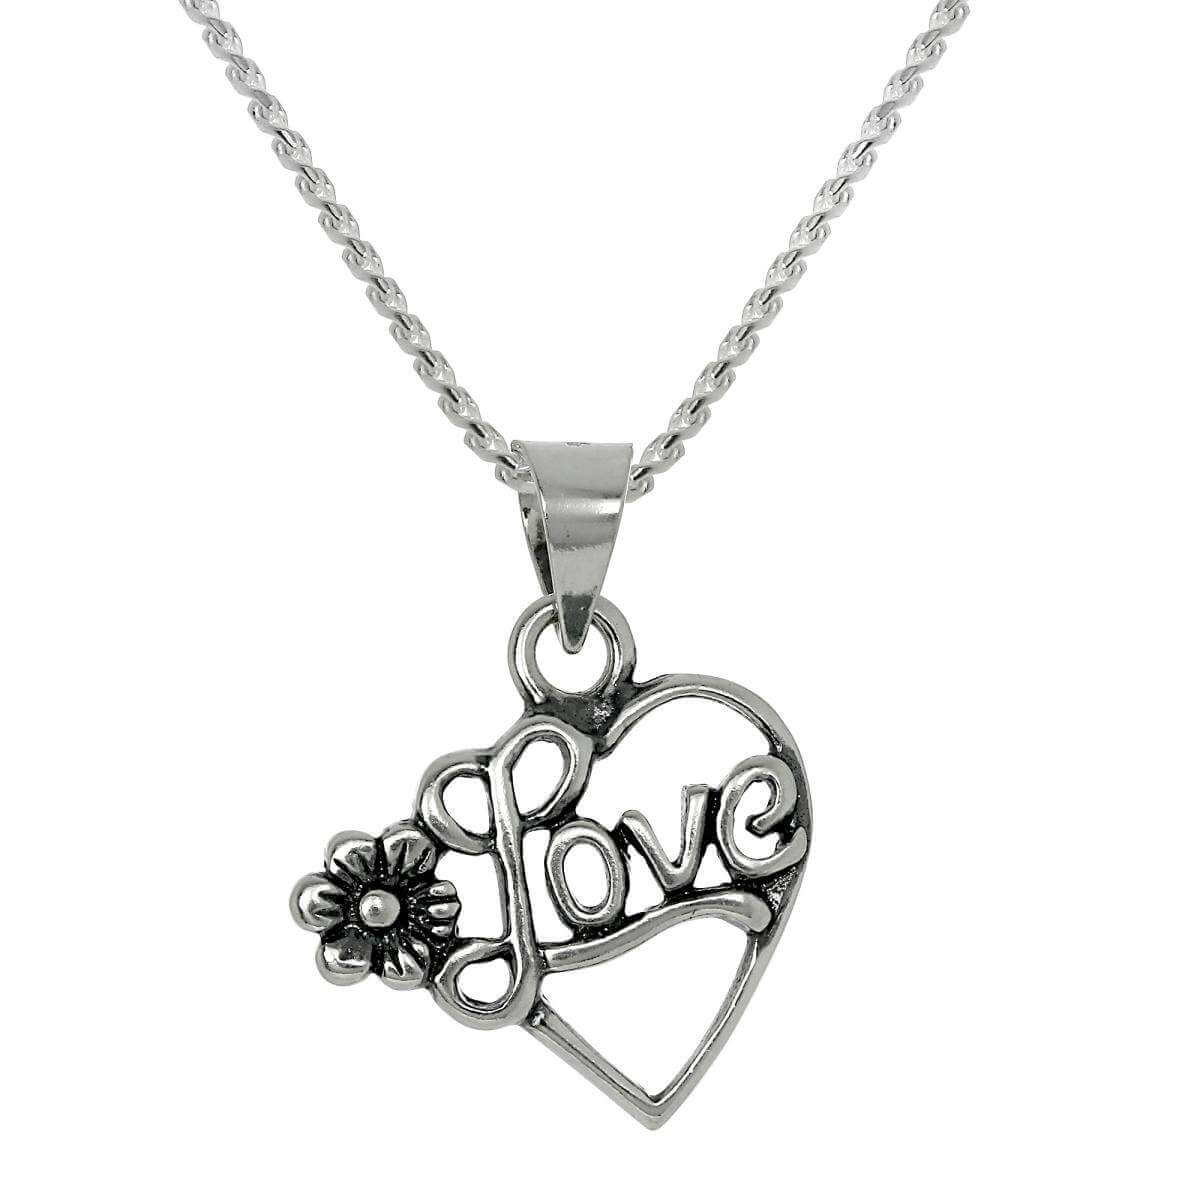 Sterling Silver Open Love Heart Pendant Necklace with Flower 16 -22 Inches